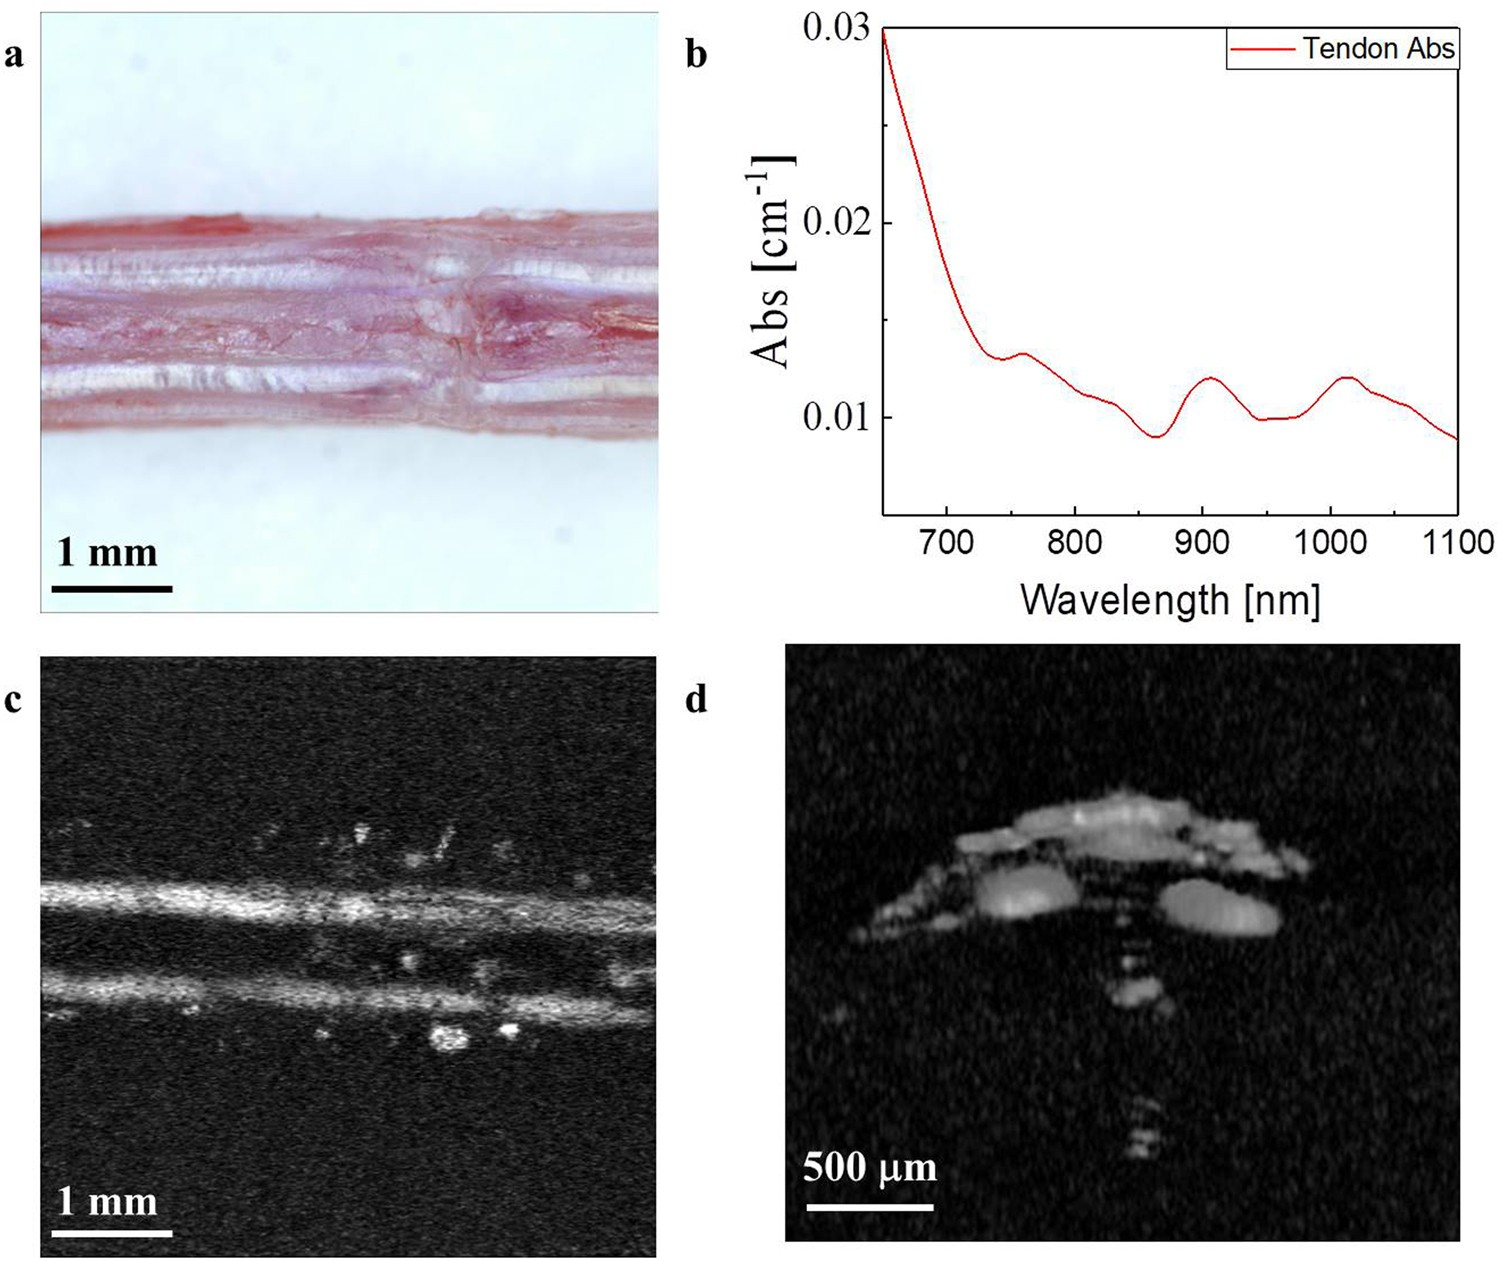 Label-free photoacoustic microscopy for in-vivo tendon imaging using a  fiber-based pulse laser | Scientific Reports